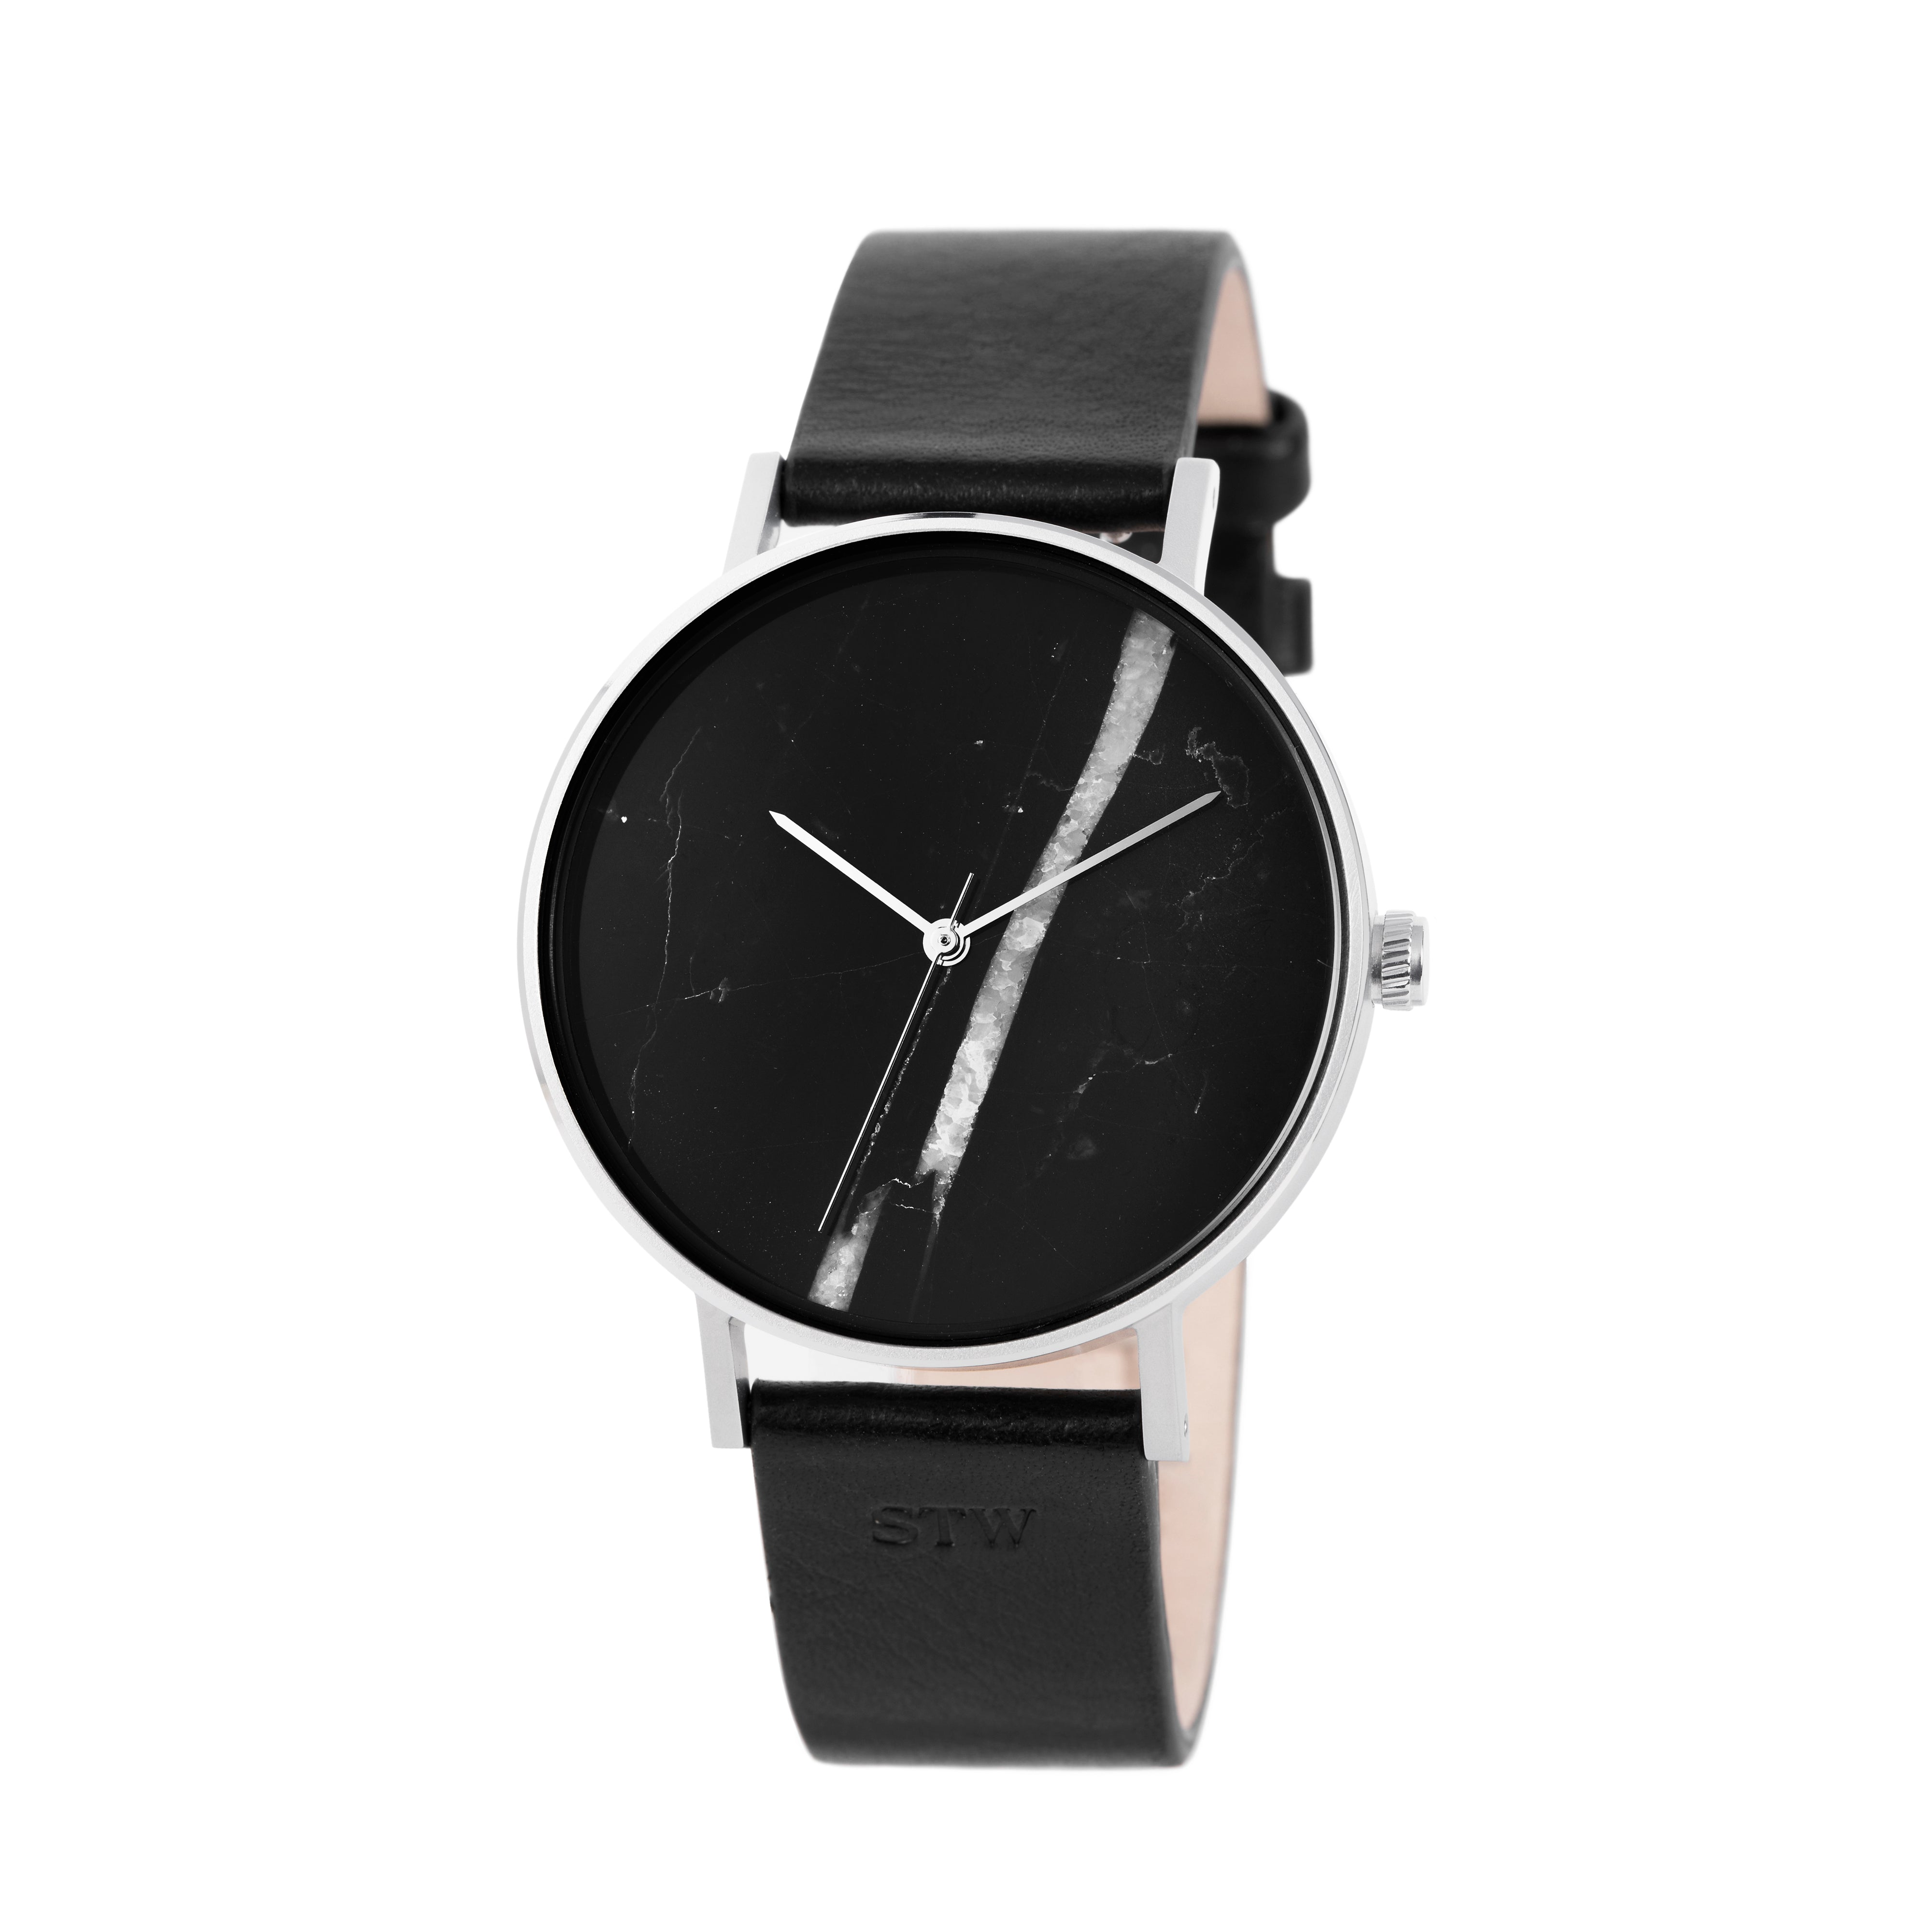 THE STONE -  BLACK ONYX DIAL / SILVER MESH BAND WATCH